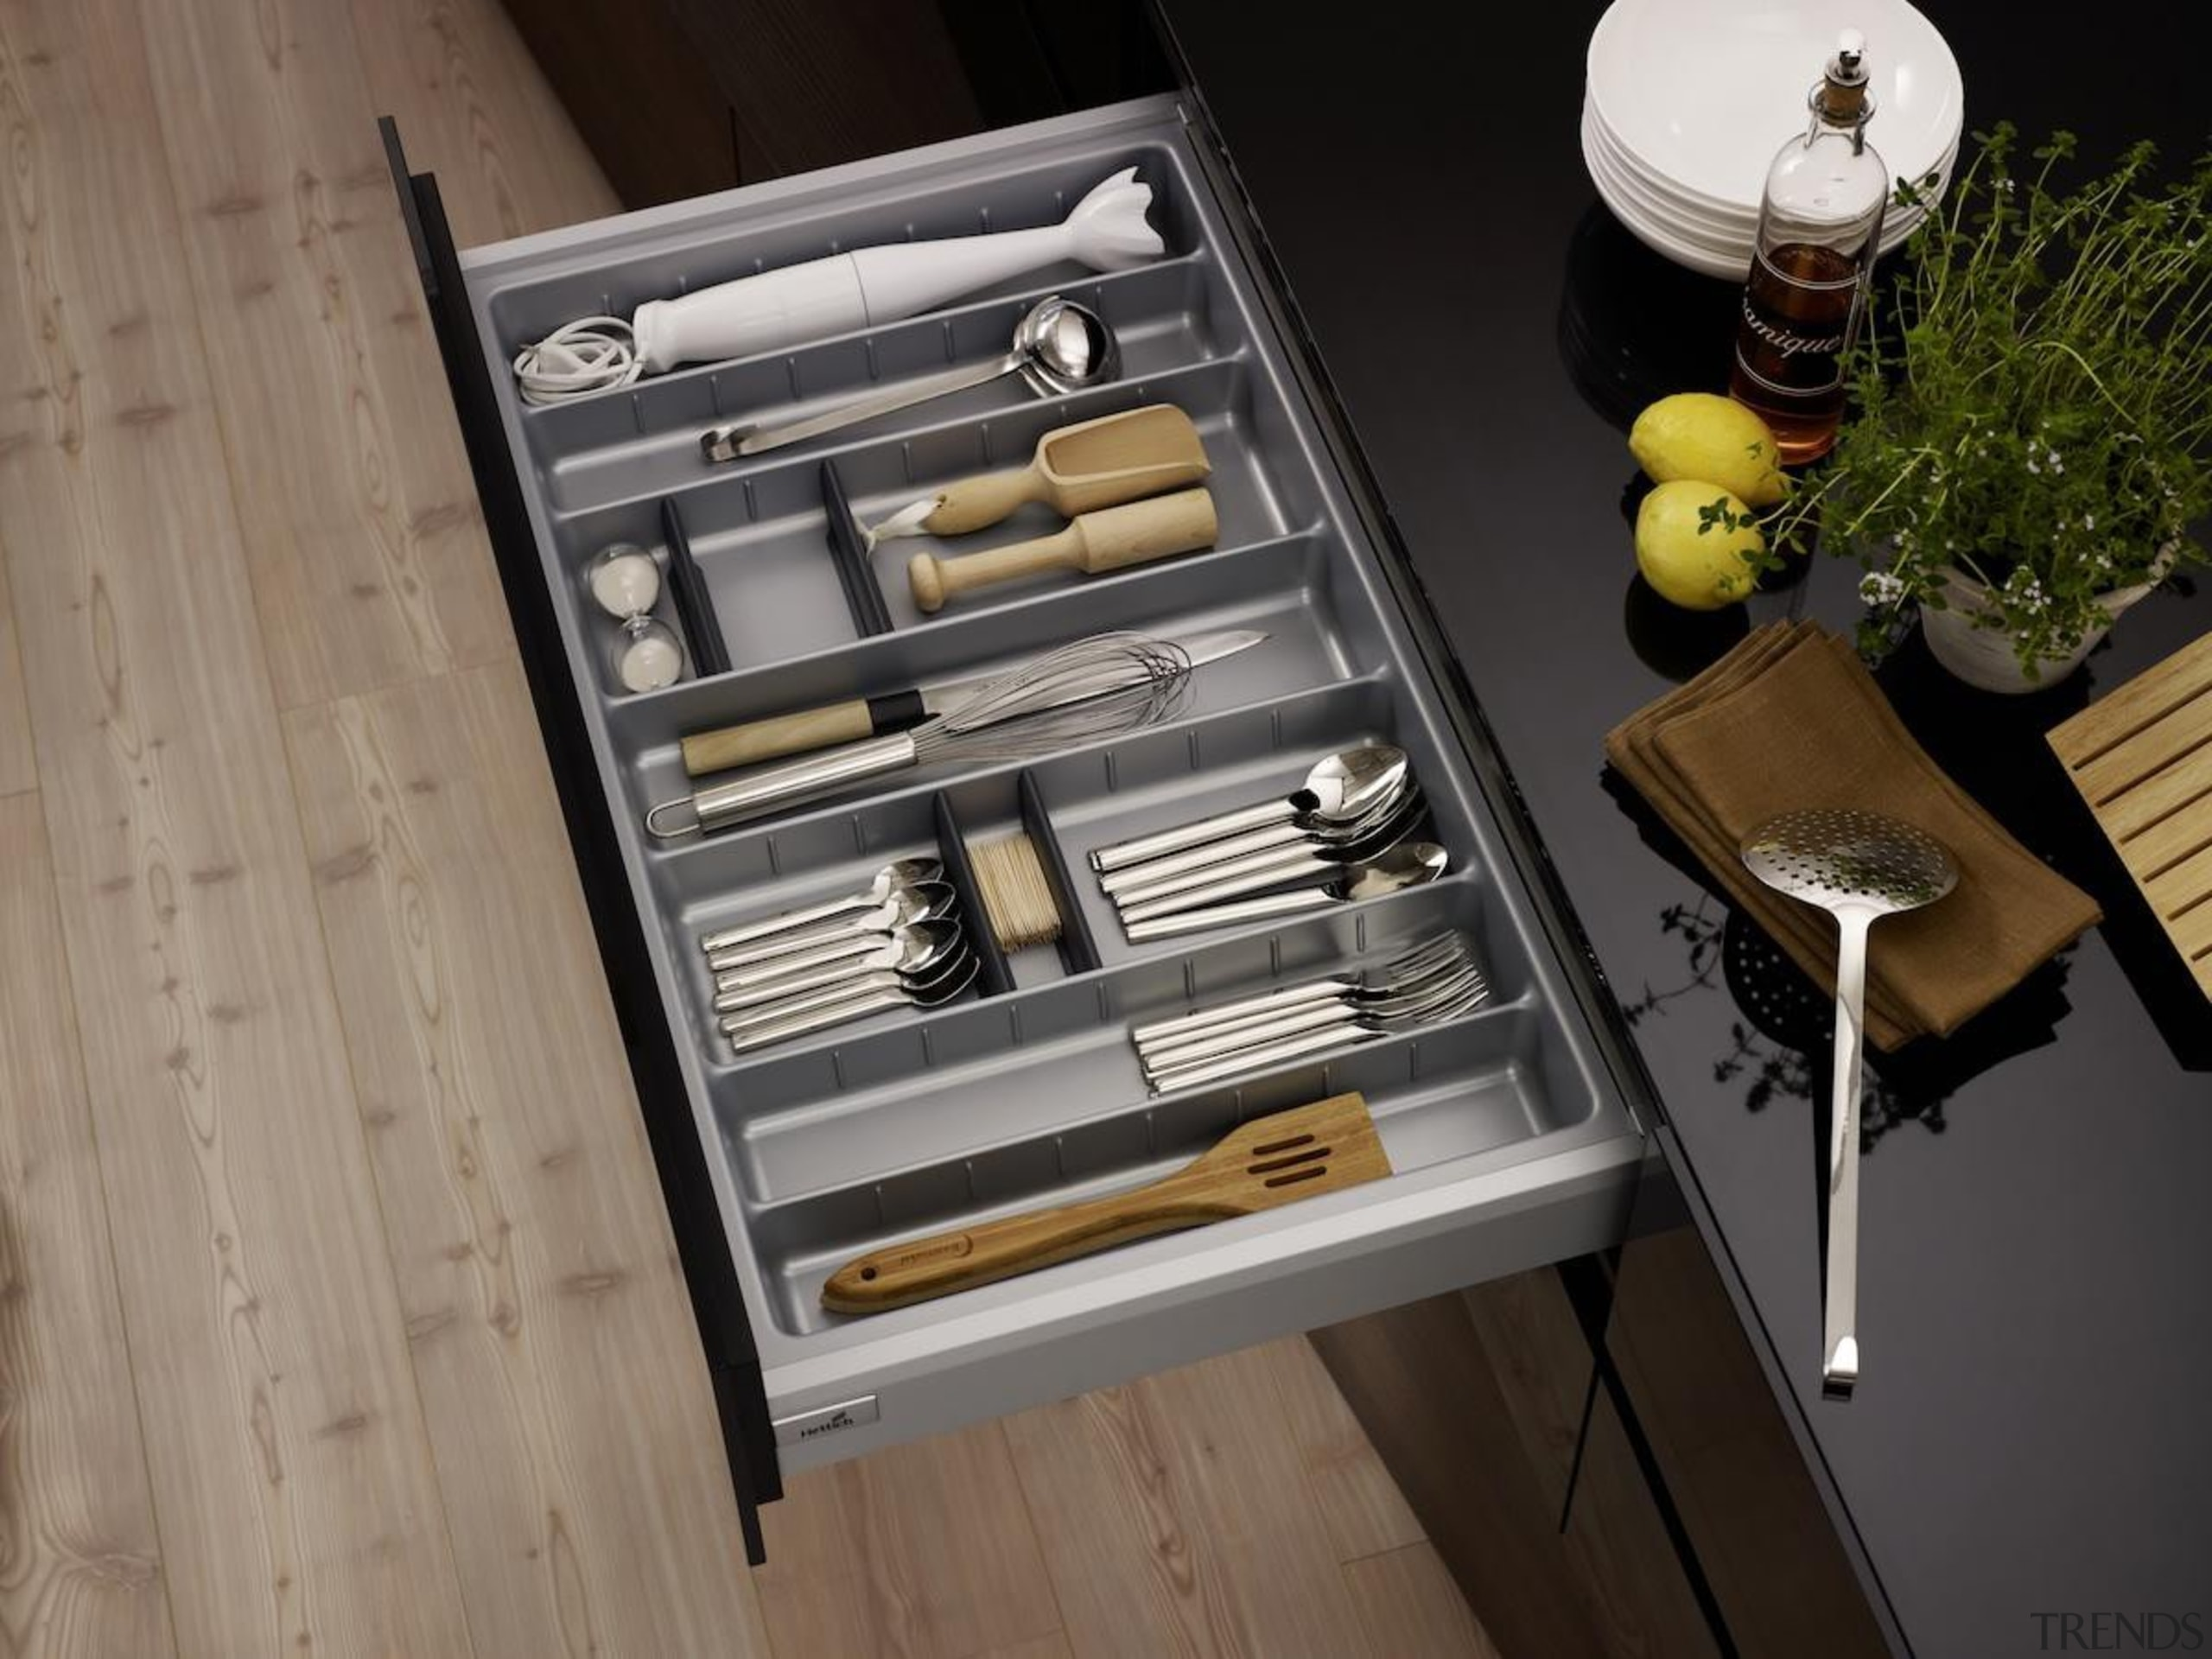 A gentle press on the front panel of drawer, furniture, table, black, gray